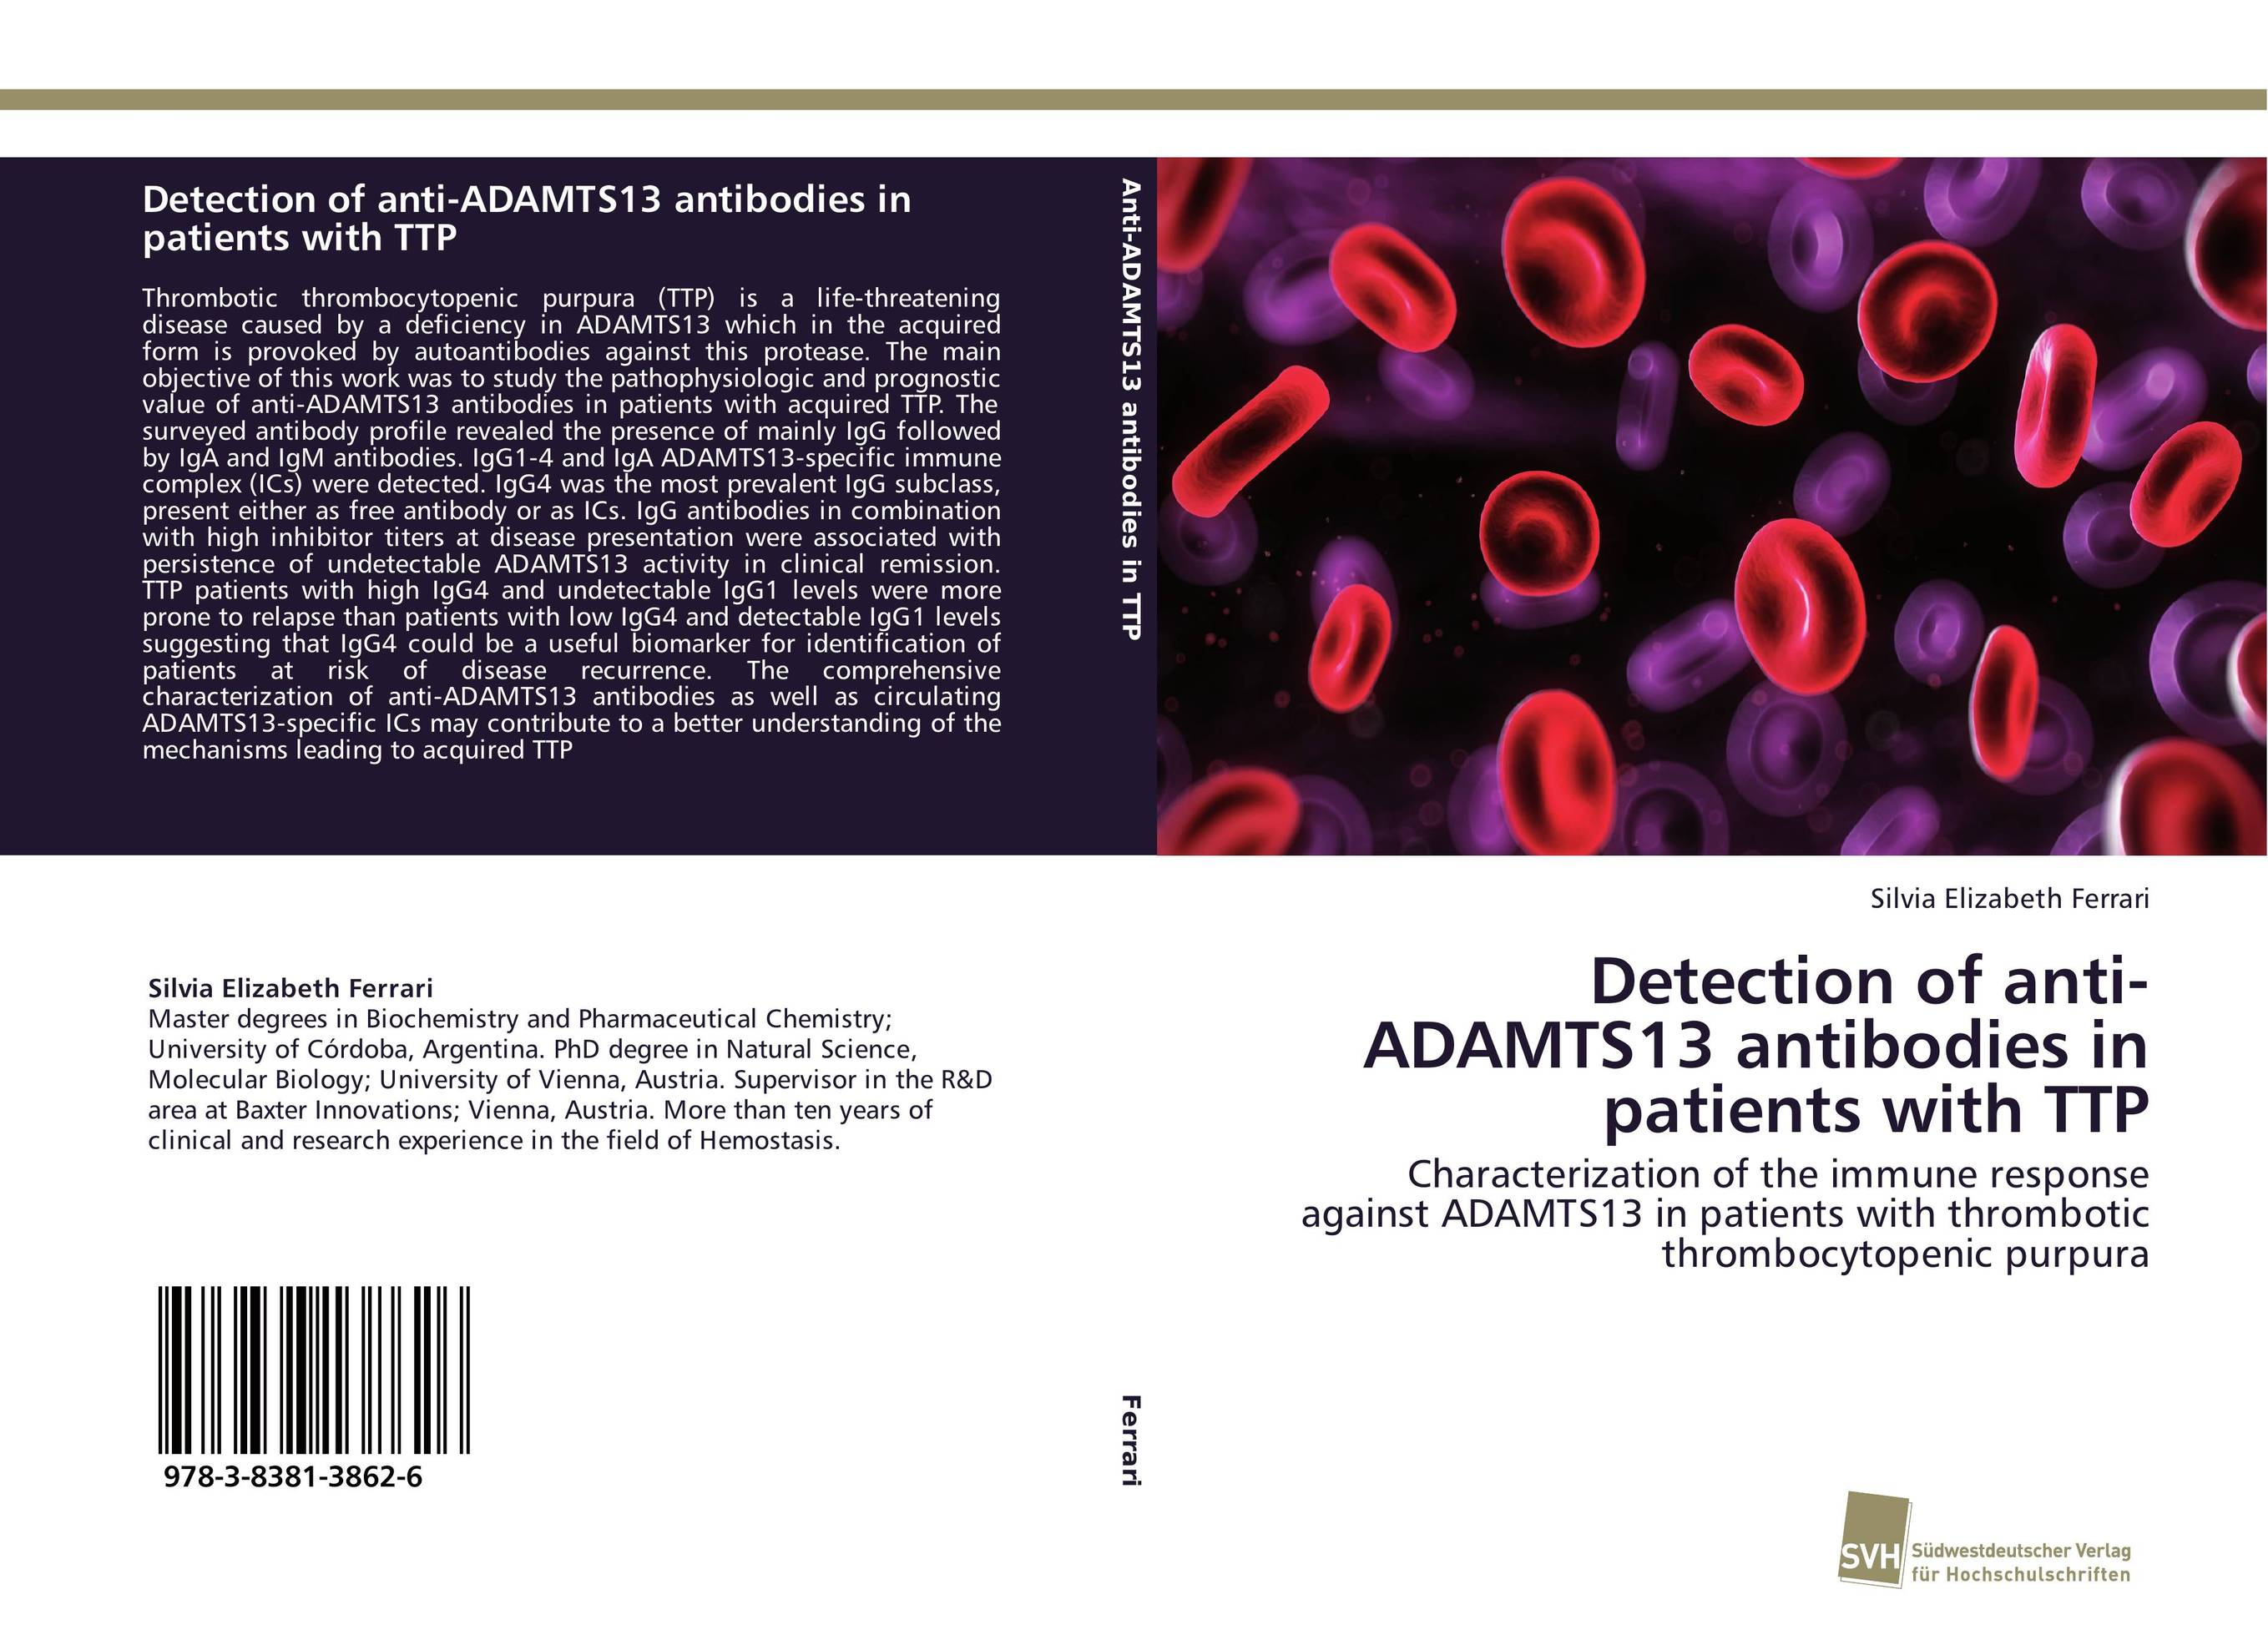 Detection of anti-ADAMTS13 antibodies in patients with TTP venkatachalam deepa parvathi and maddaly ravi anti mitotic polyclonal antibodies for mitotic inhibition